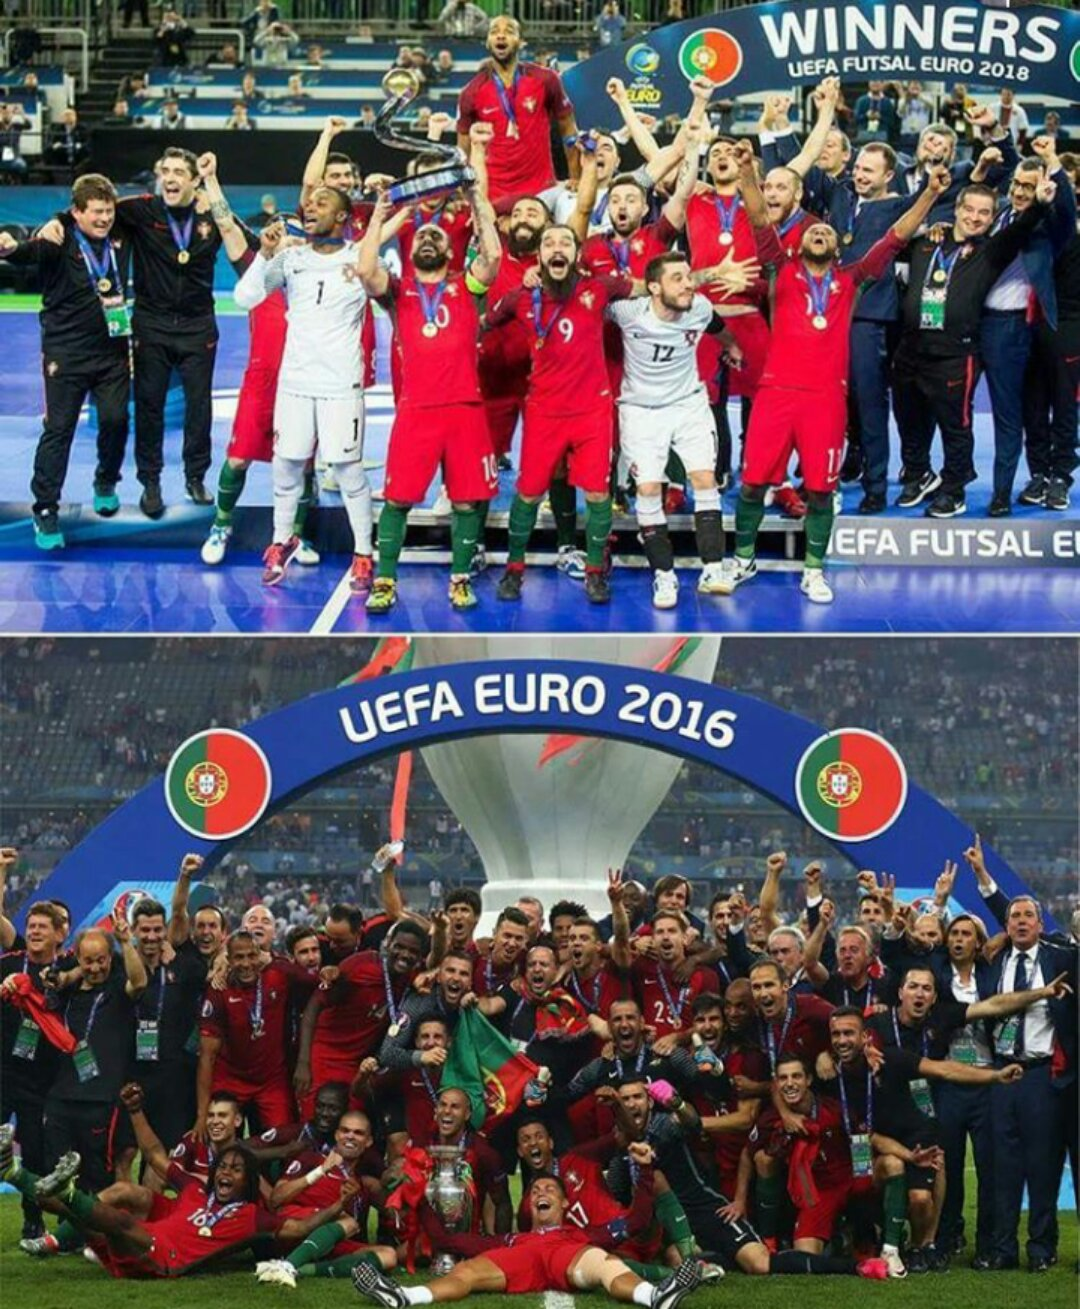 Portugal je prvak Europe u futsalu!